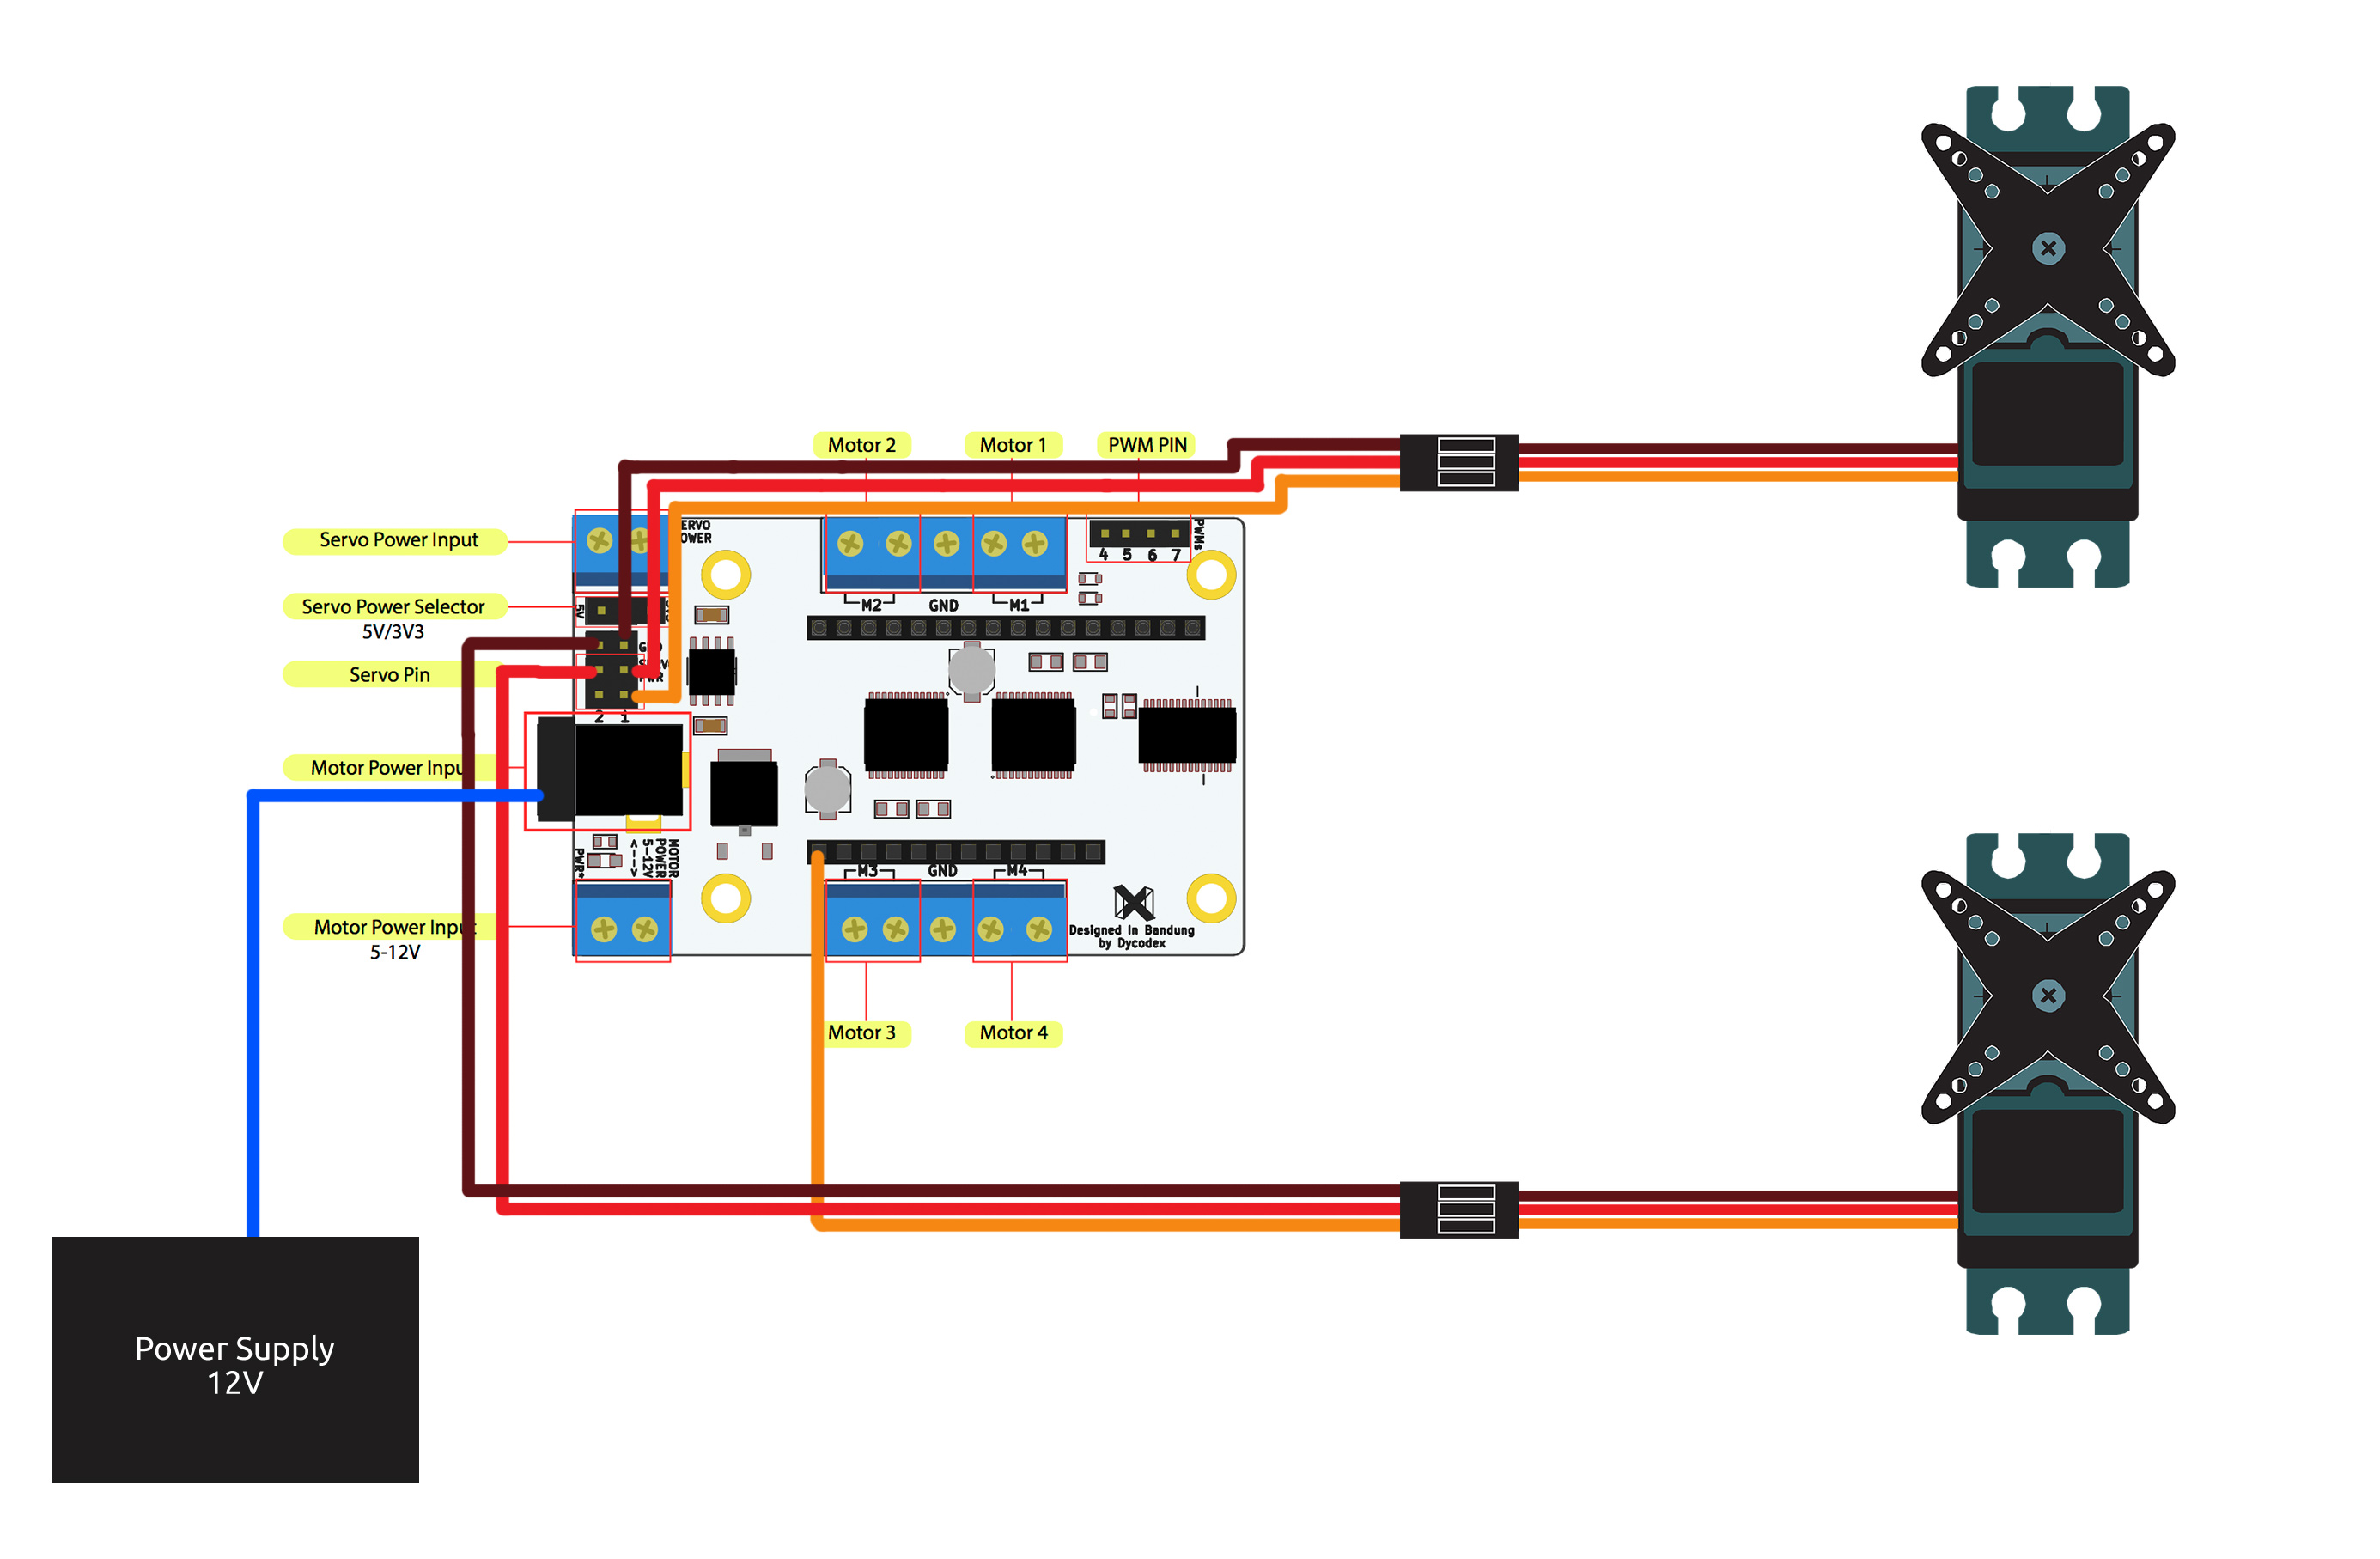 Swell Yam Wiring Diagram Wiring Diagram Data Wiring Cloud Hisonuggs Outletorg